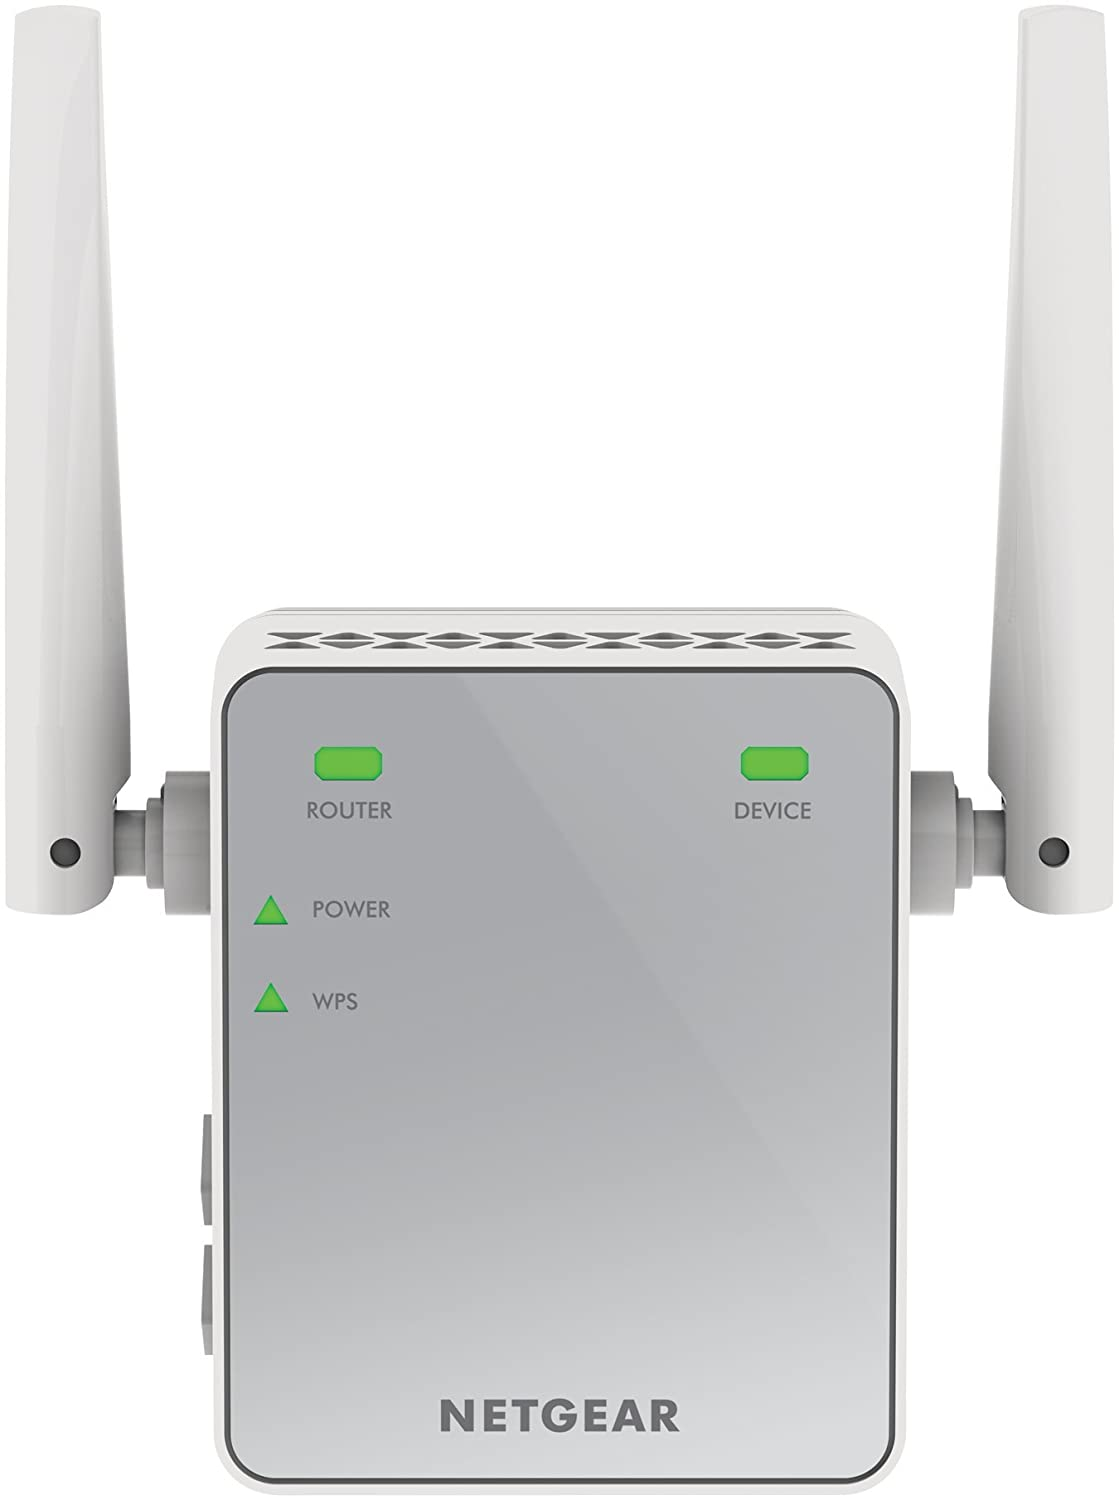 WLAN-Repeater Netgear EX2700-100PES N300 Test 2015